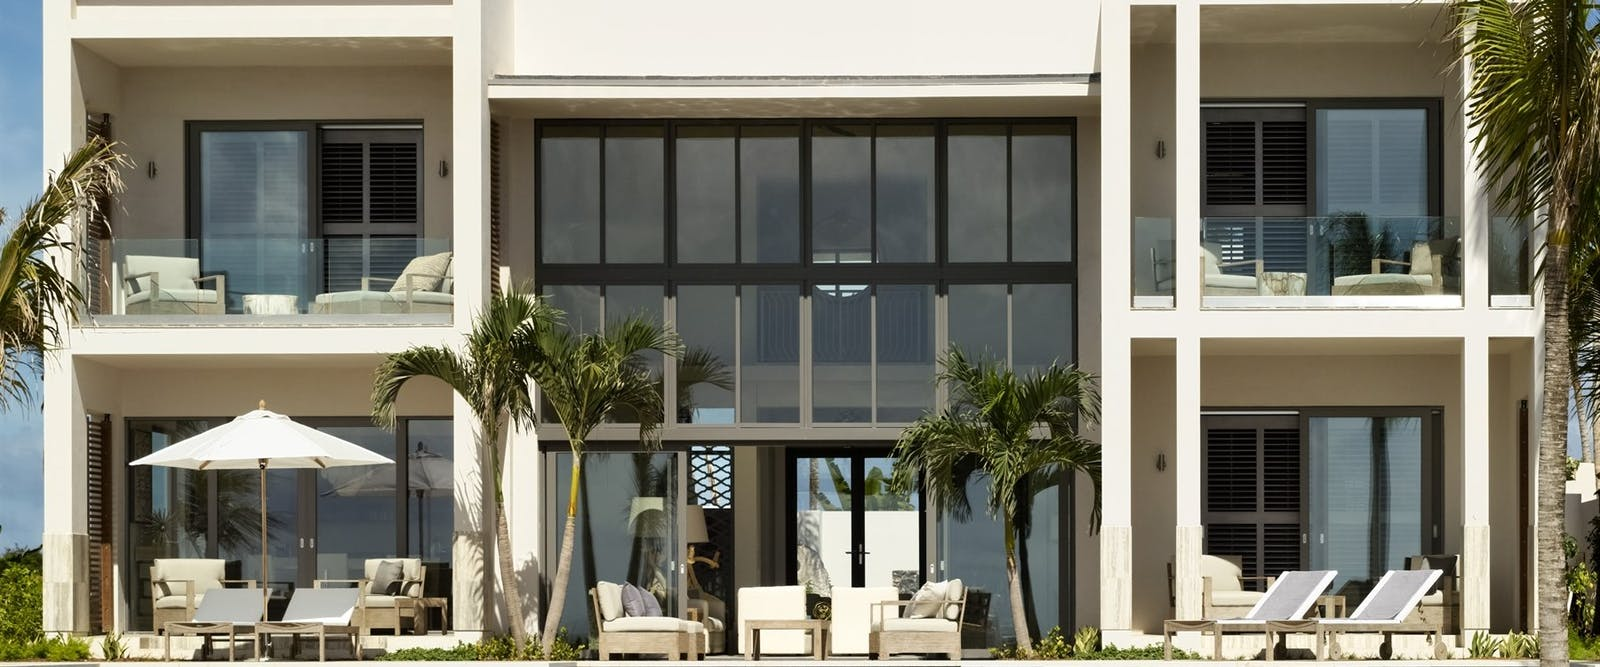 Villa exterior at Four Seasons Anguilla Resort